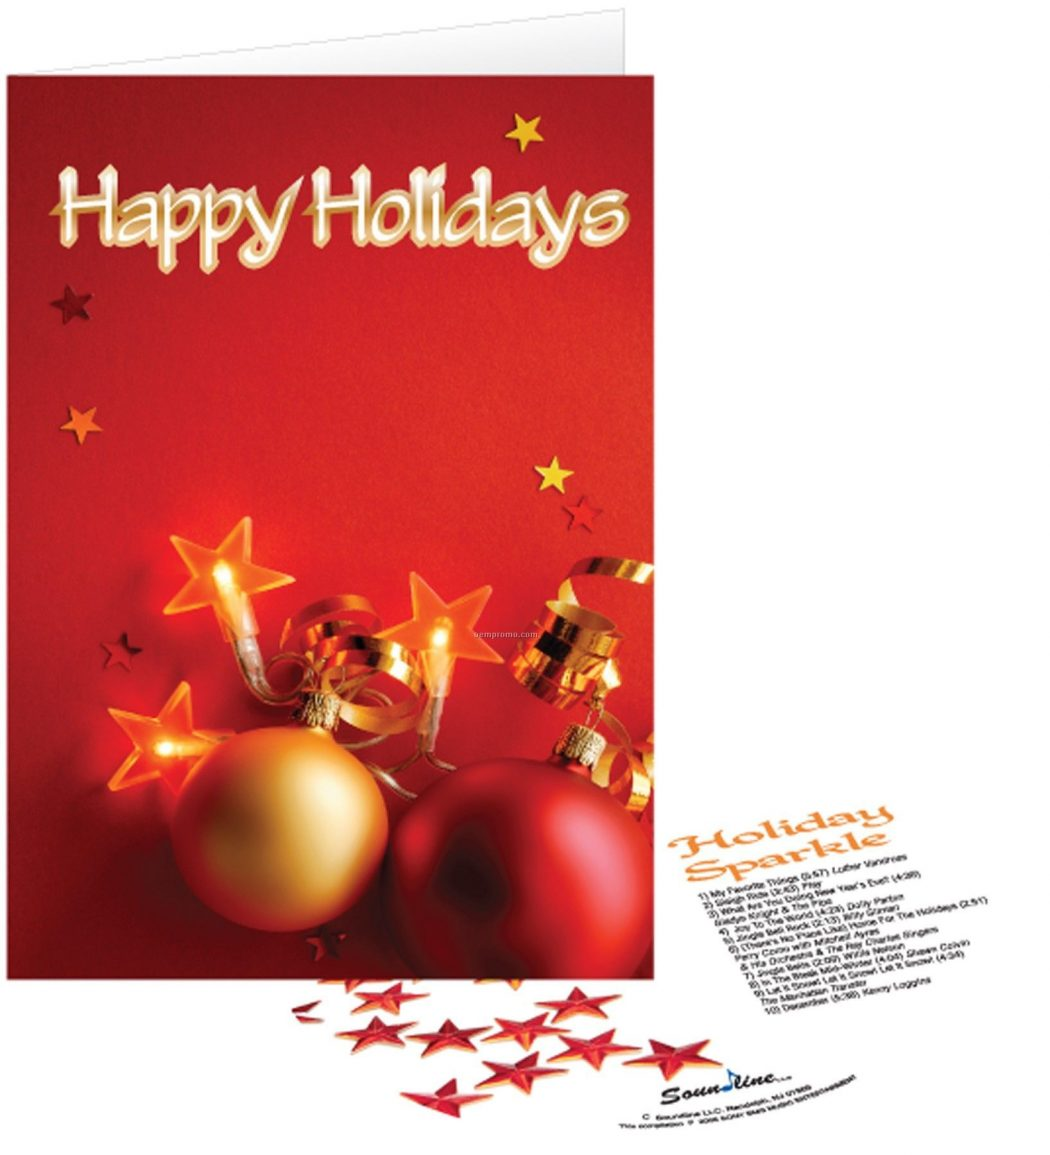 Happy-Holidays-Greeting-Card Wonderful greeting cards for happy holidays